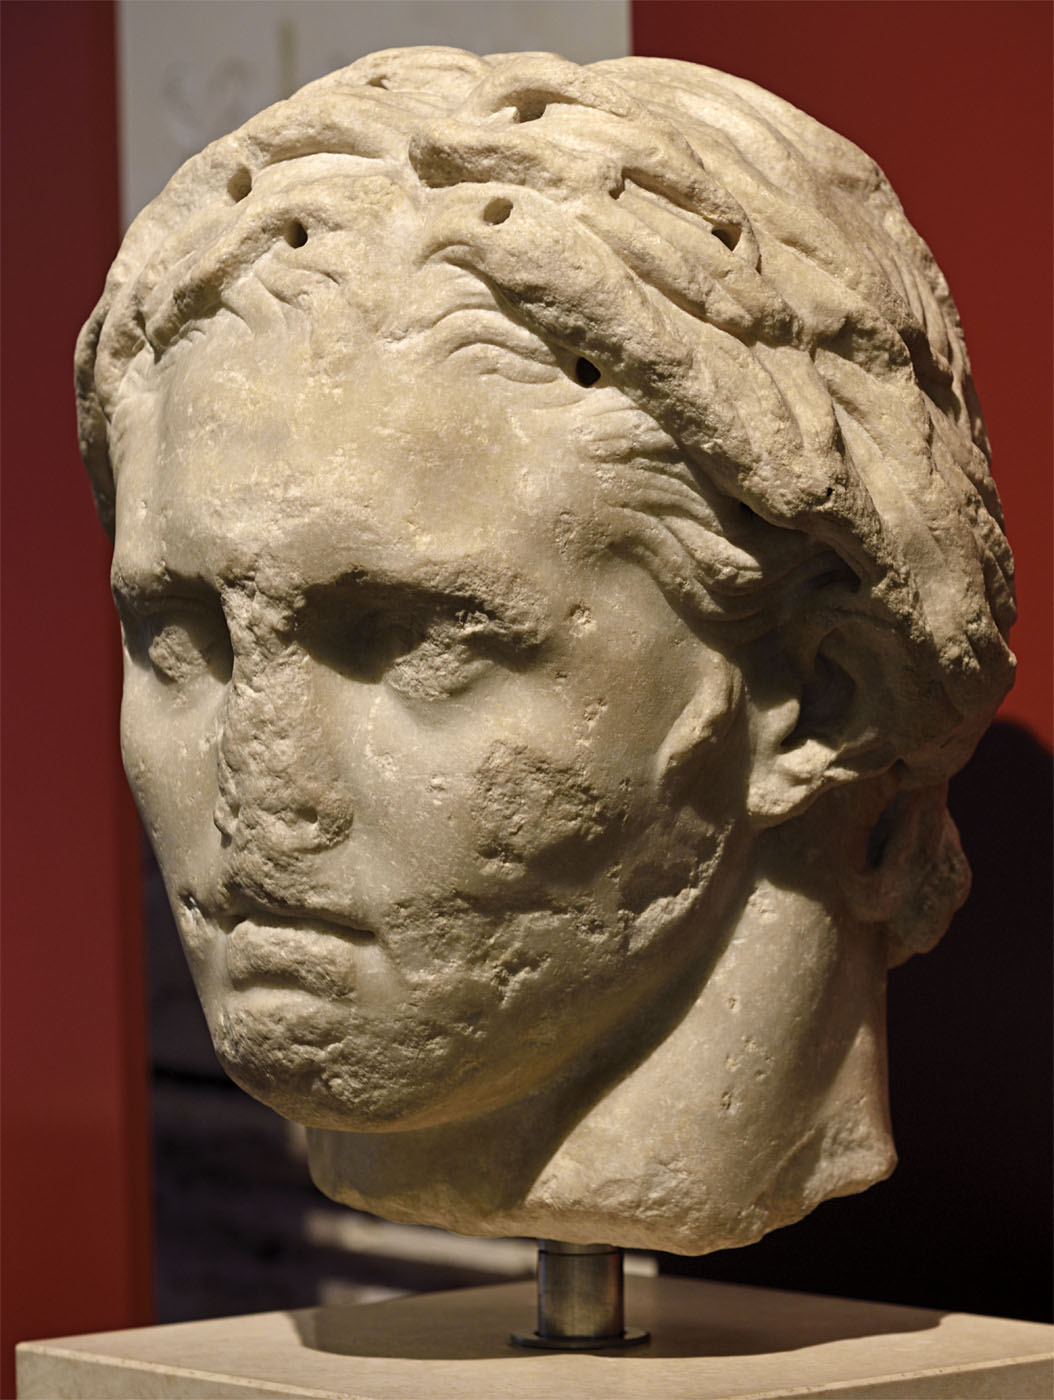 Alexander the Great. Parian marble. Copy of the 1st century BCE after a statue by Lysippos ca. 330 BCE. Inv. No. 124507. Rome, Roman National Museum, Palazzo Massimo alle Terme